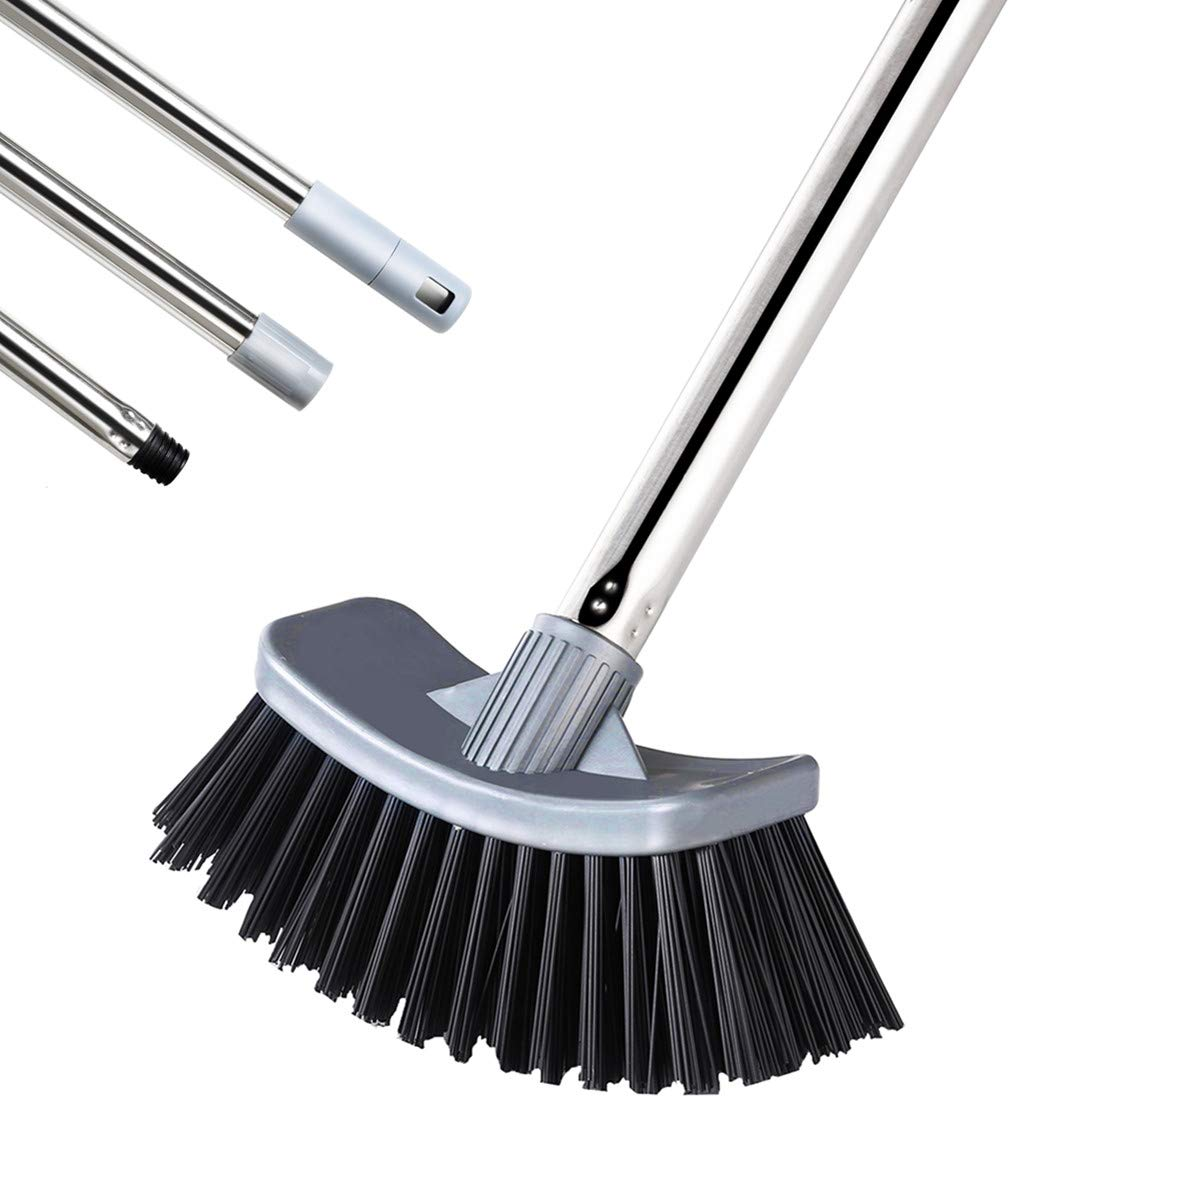 MEIBEI Hot Tub Scrub Brush with Long Handle -47'', Stiff Bristles Grout Brush, Perfect for Cleaning Bathtub/Spa/Pond and Small Above Ground Pool by MEIBEI